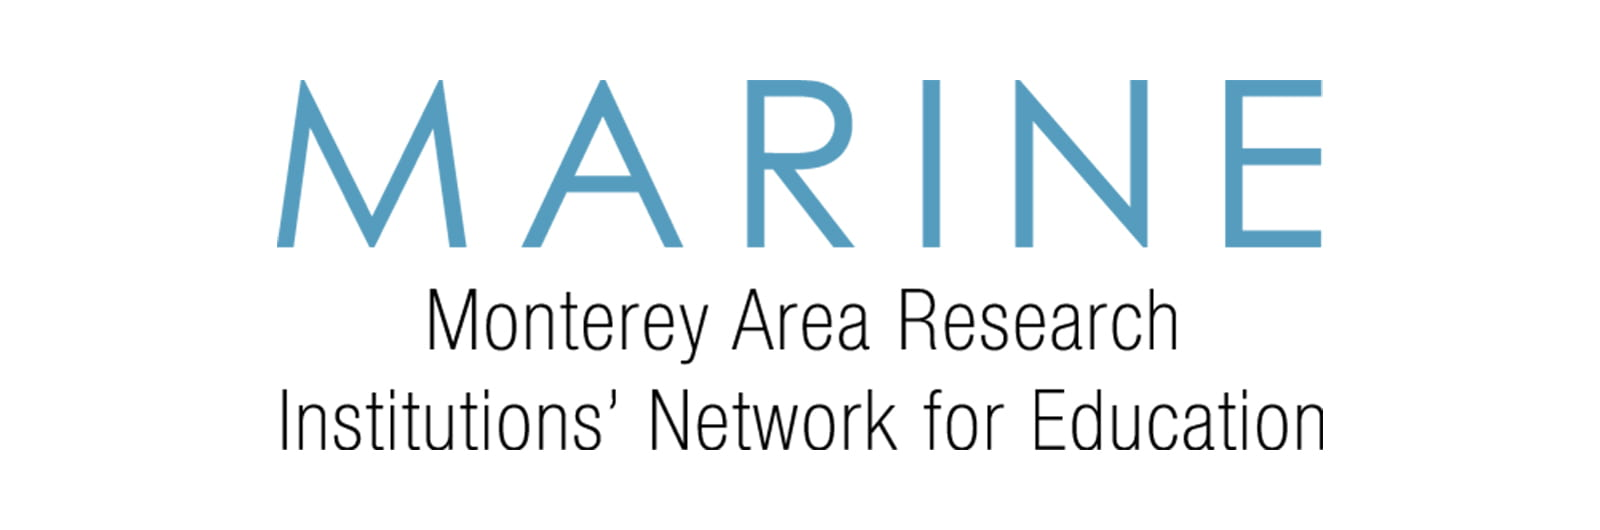 Monterey Area Research Institutions' Network for Education (MARINE)